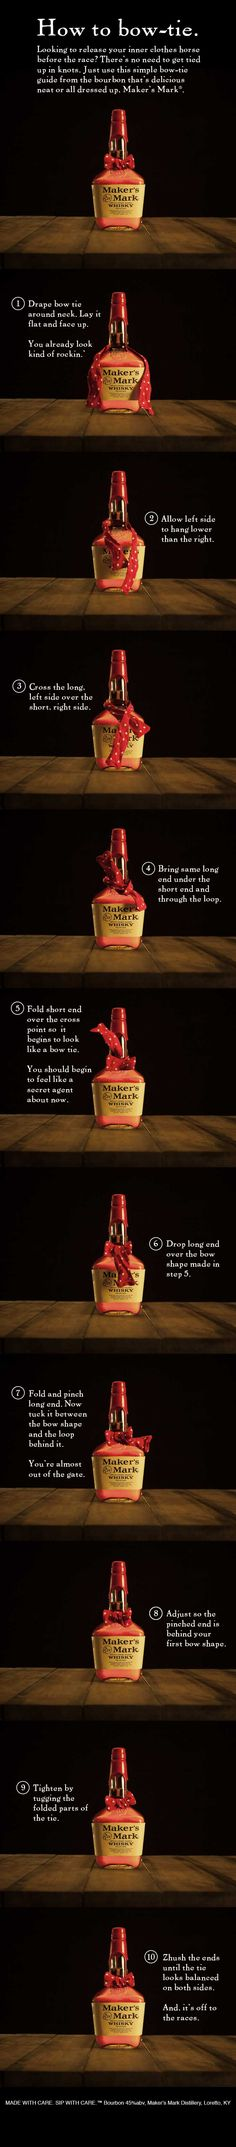 Looking to release your inner clothes horse before the race? There's no need to get tied up in knots. Just use this simple bow-tie guide from the bourbon that's delicious neat or all dressed up. #MakeItDelicious